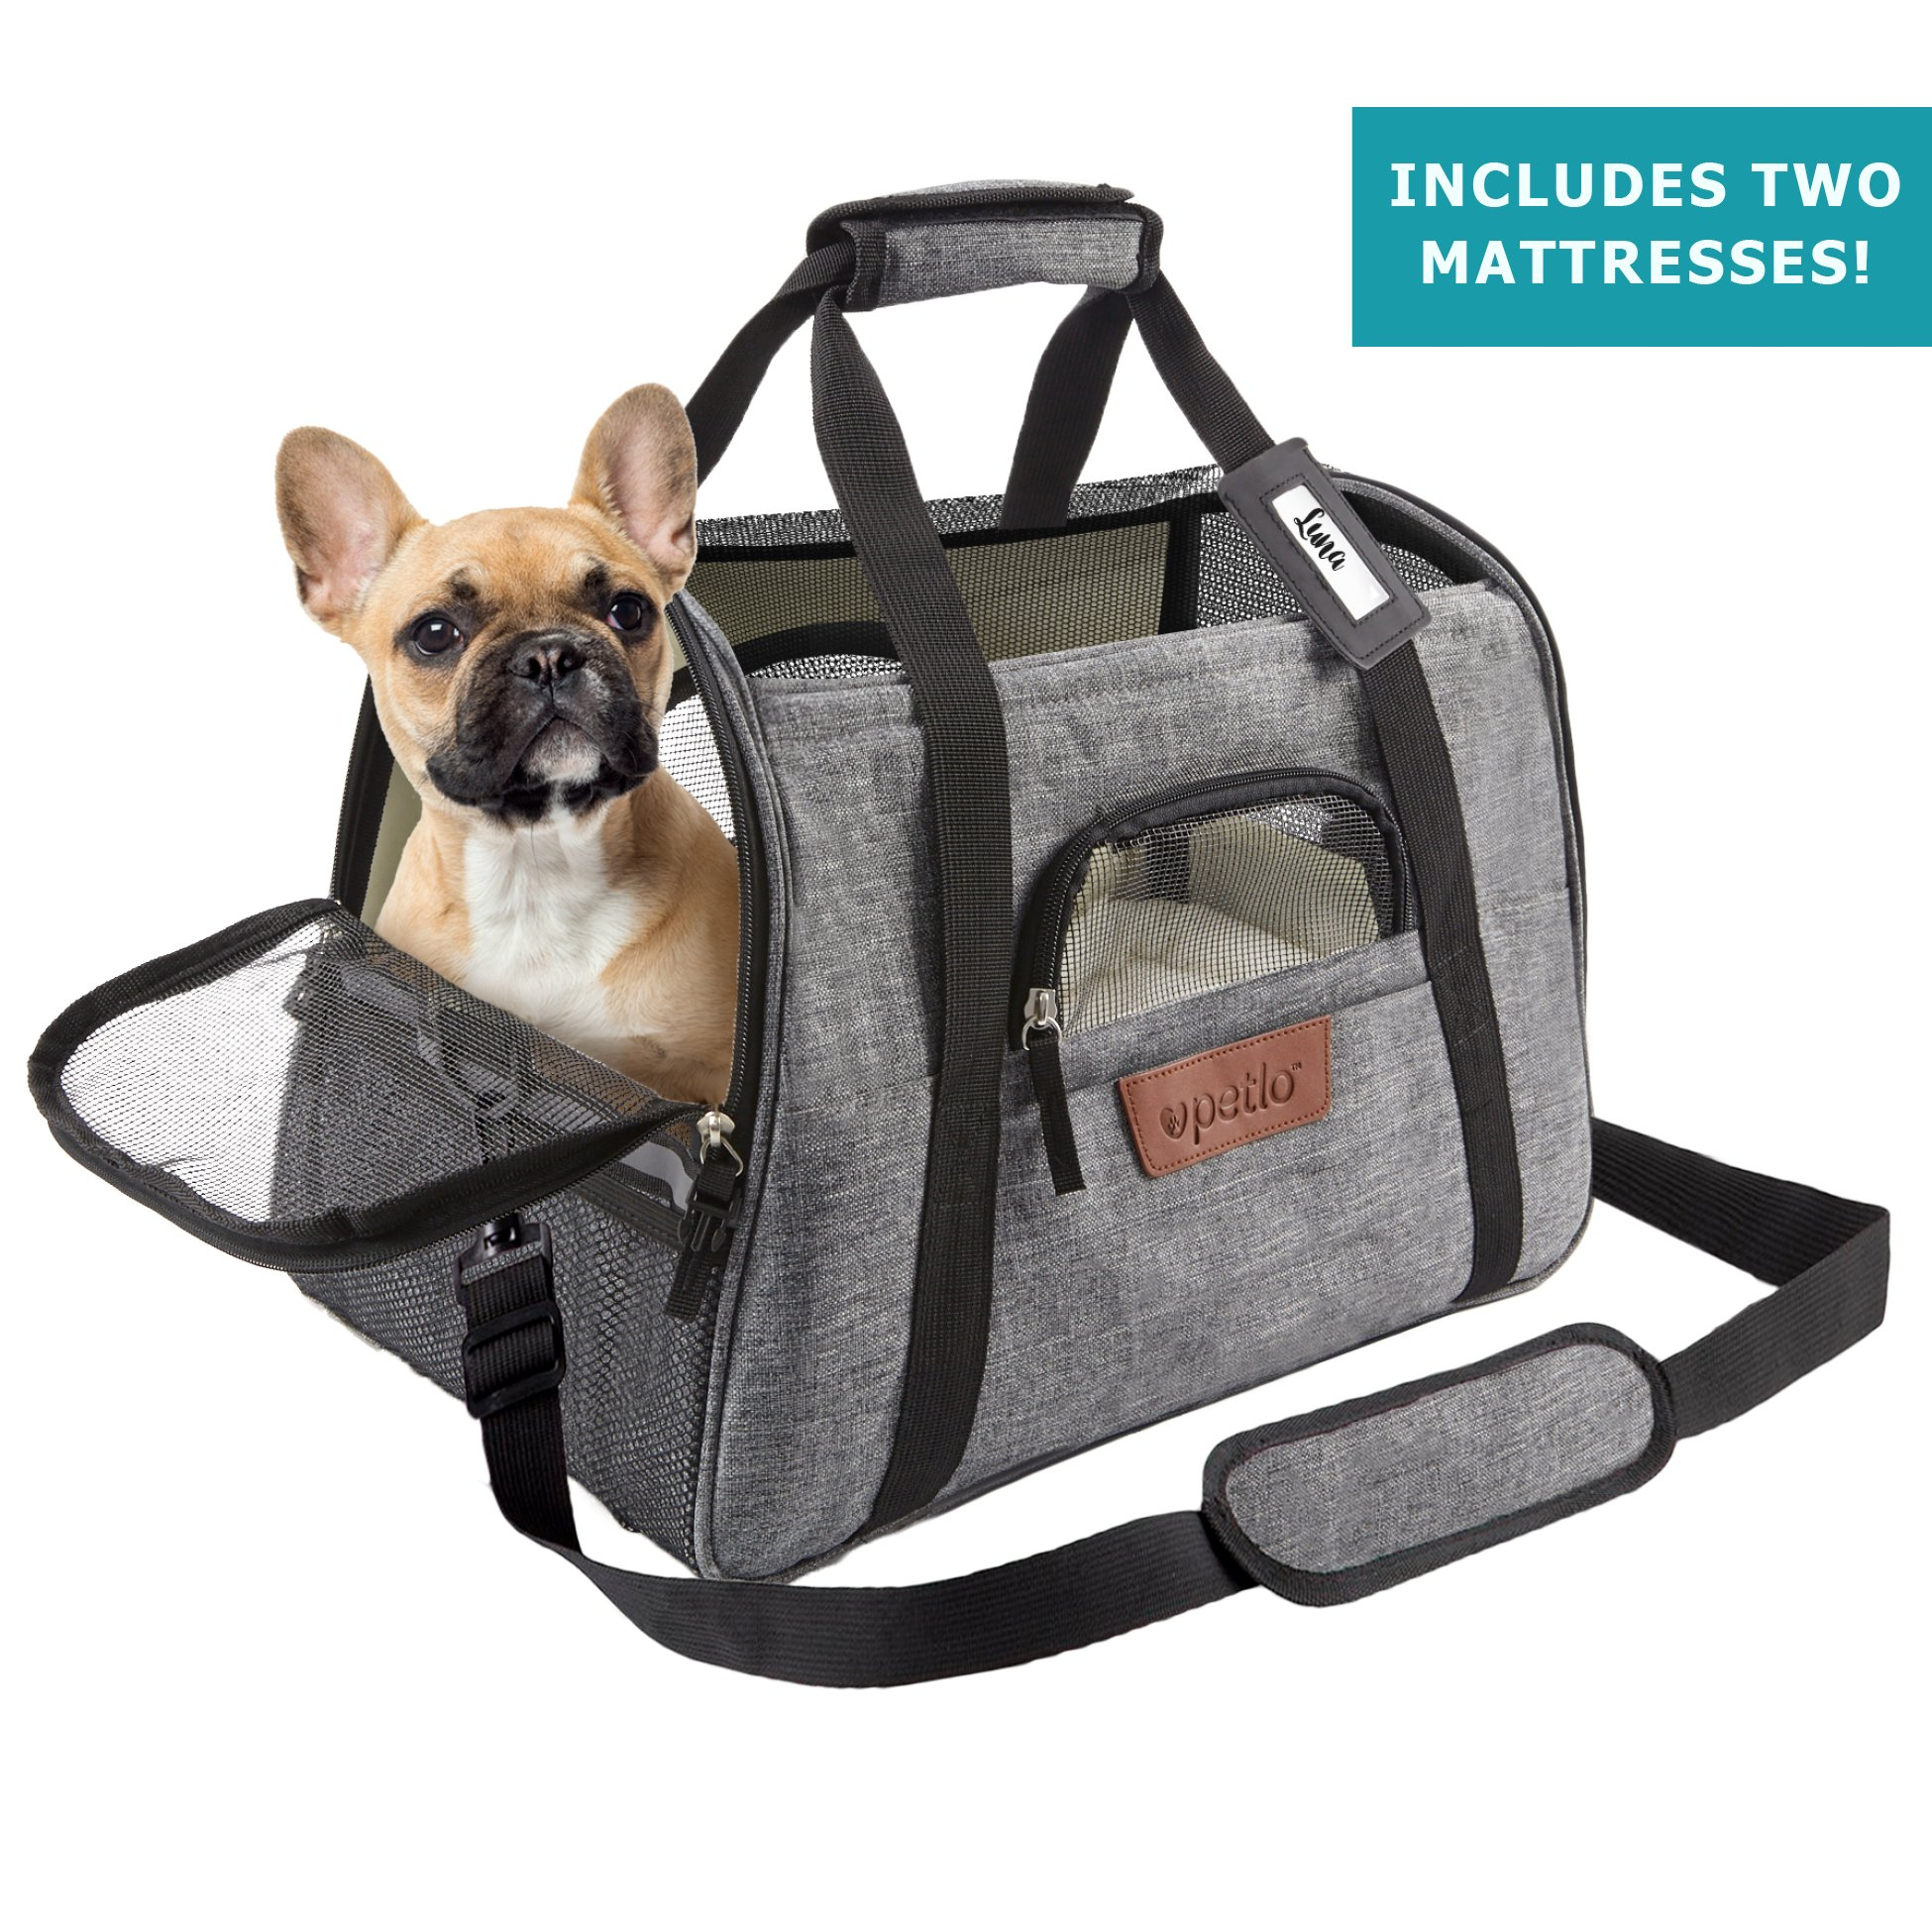 Airline Approved Pet Carrier - Soft Sided Portable Travel Bag with Mesh Windows and Fleece Padding - for Small Dogs and Cats – Fits Under Airplane Seat